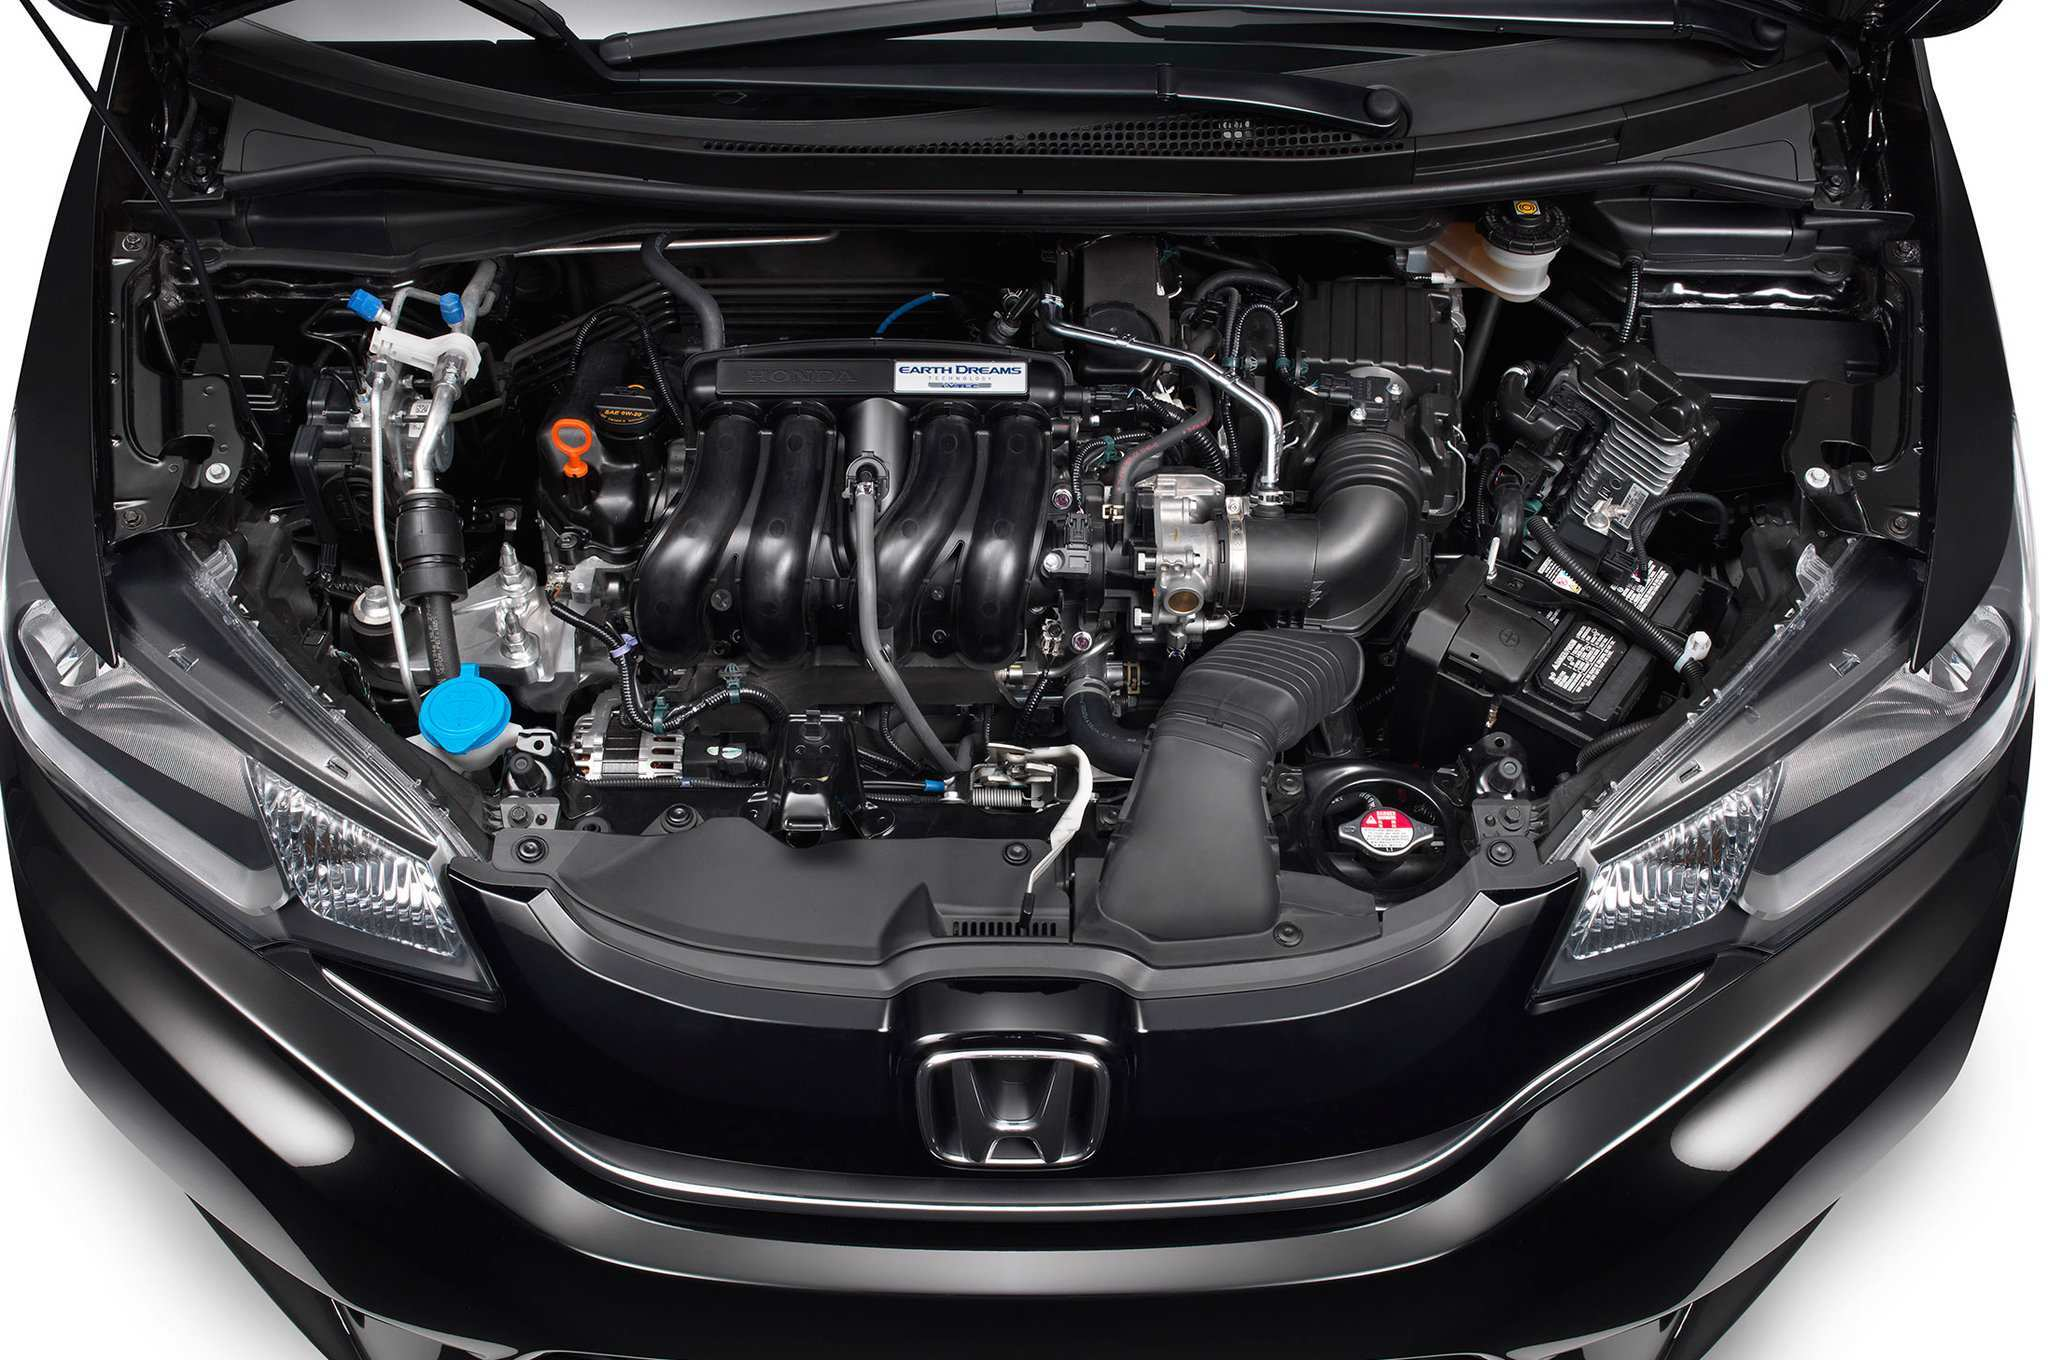 92 Gallery of 2019 Honda Fit Engine Spesification for 2019 Honda Fit Engine